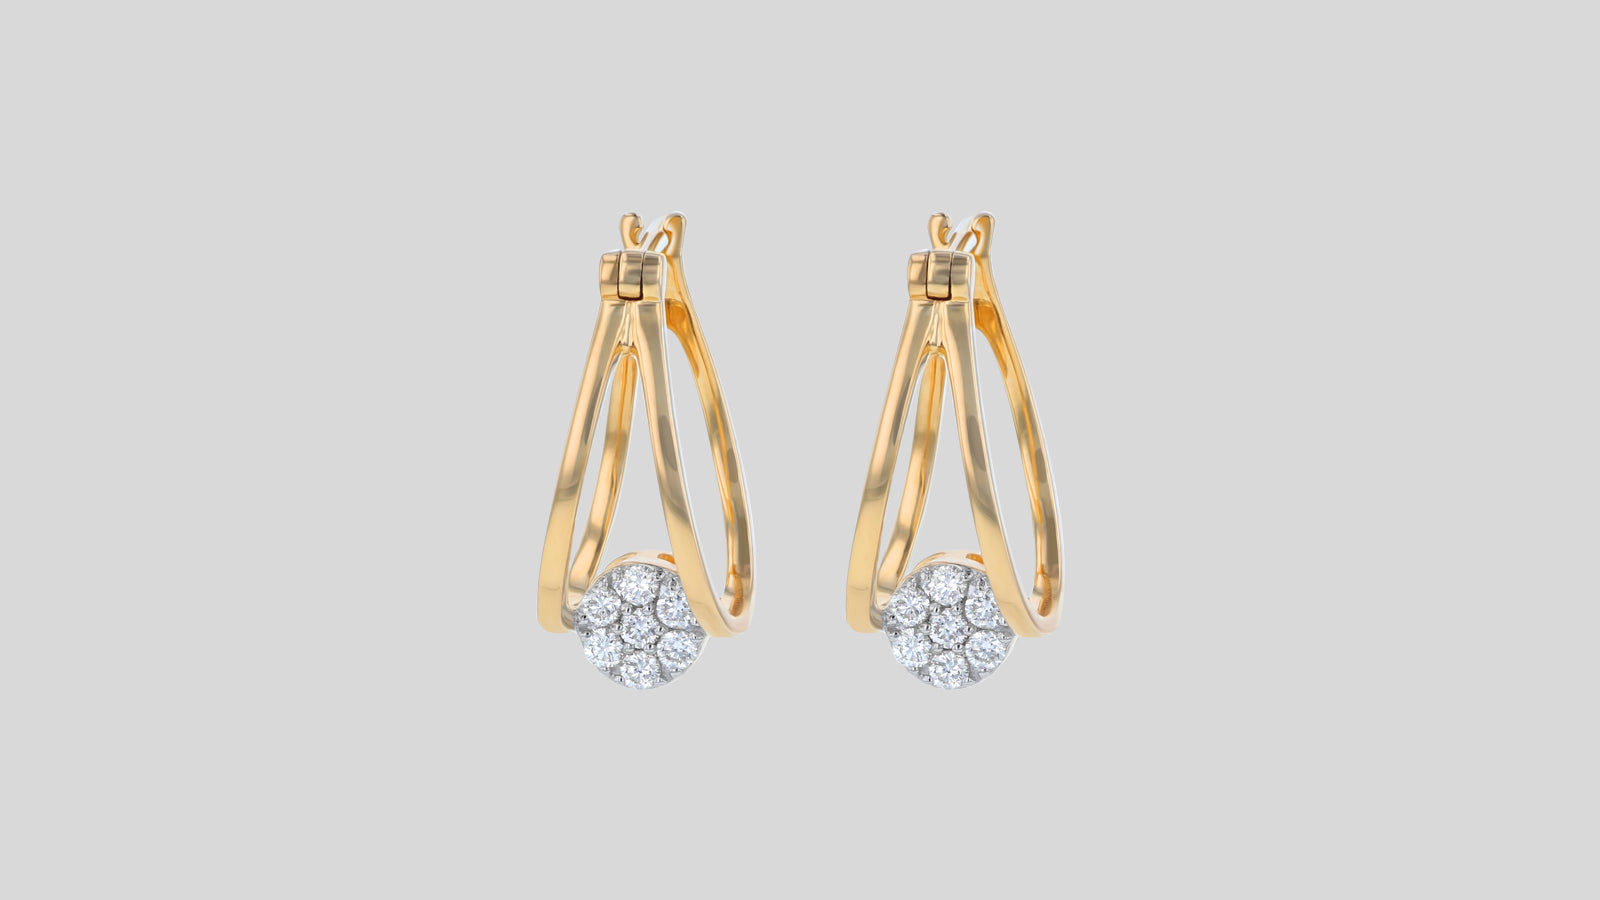 The 1920's Split Hoop Diamond Earrings